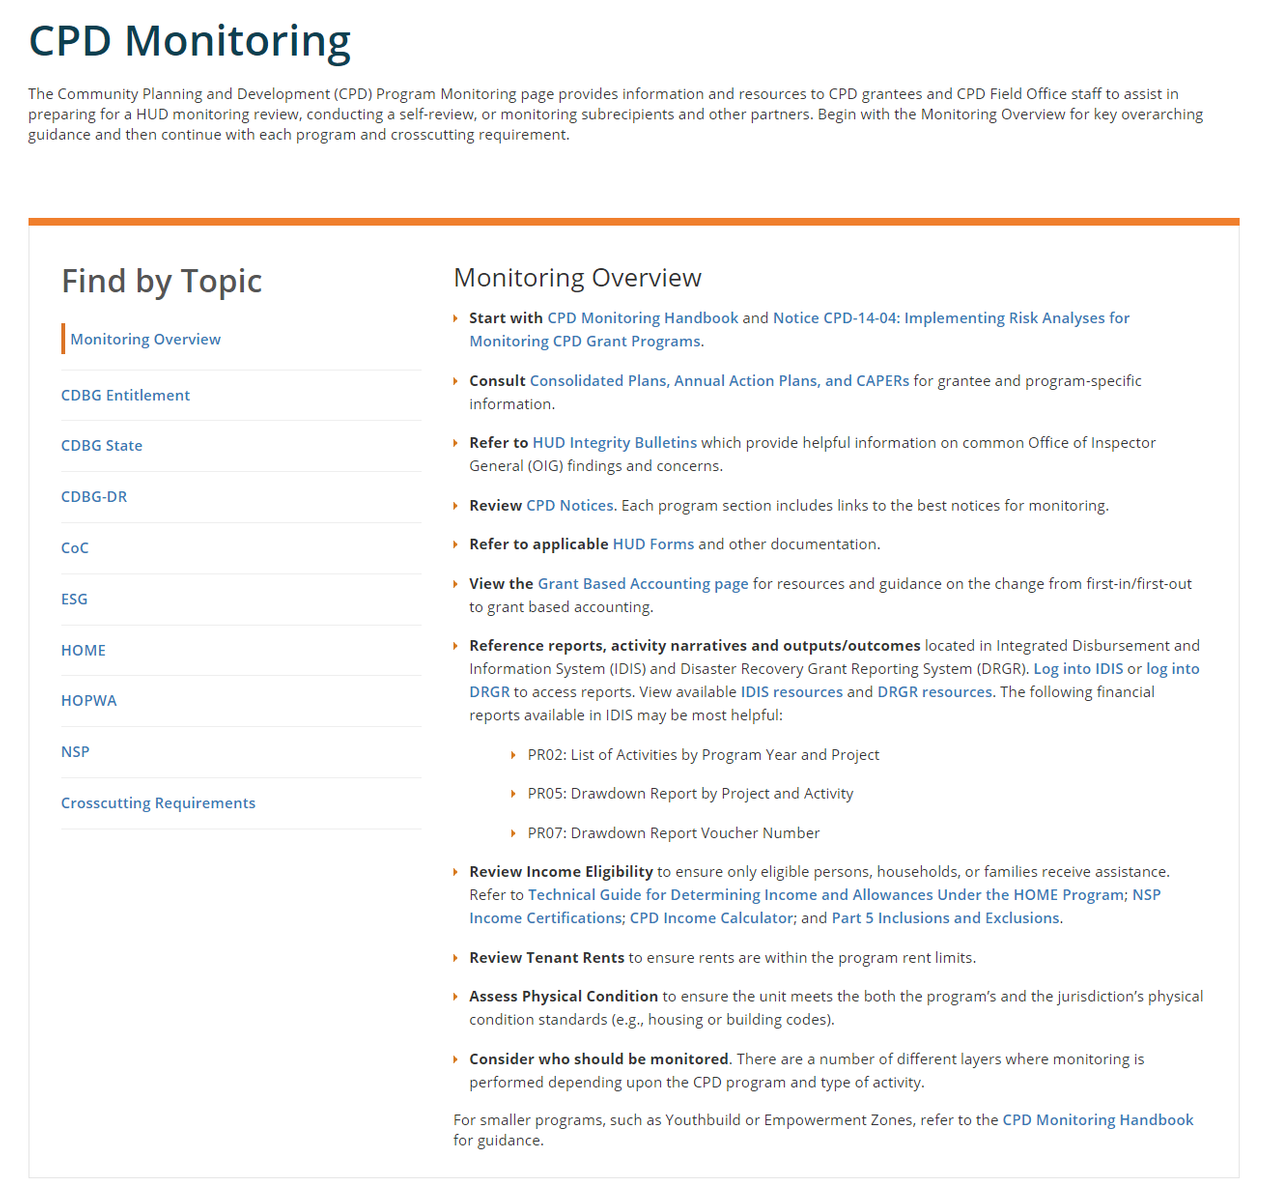 CPD Monitoring Page